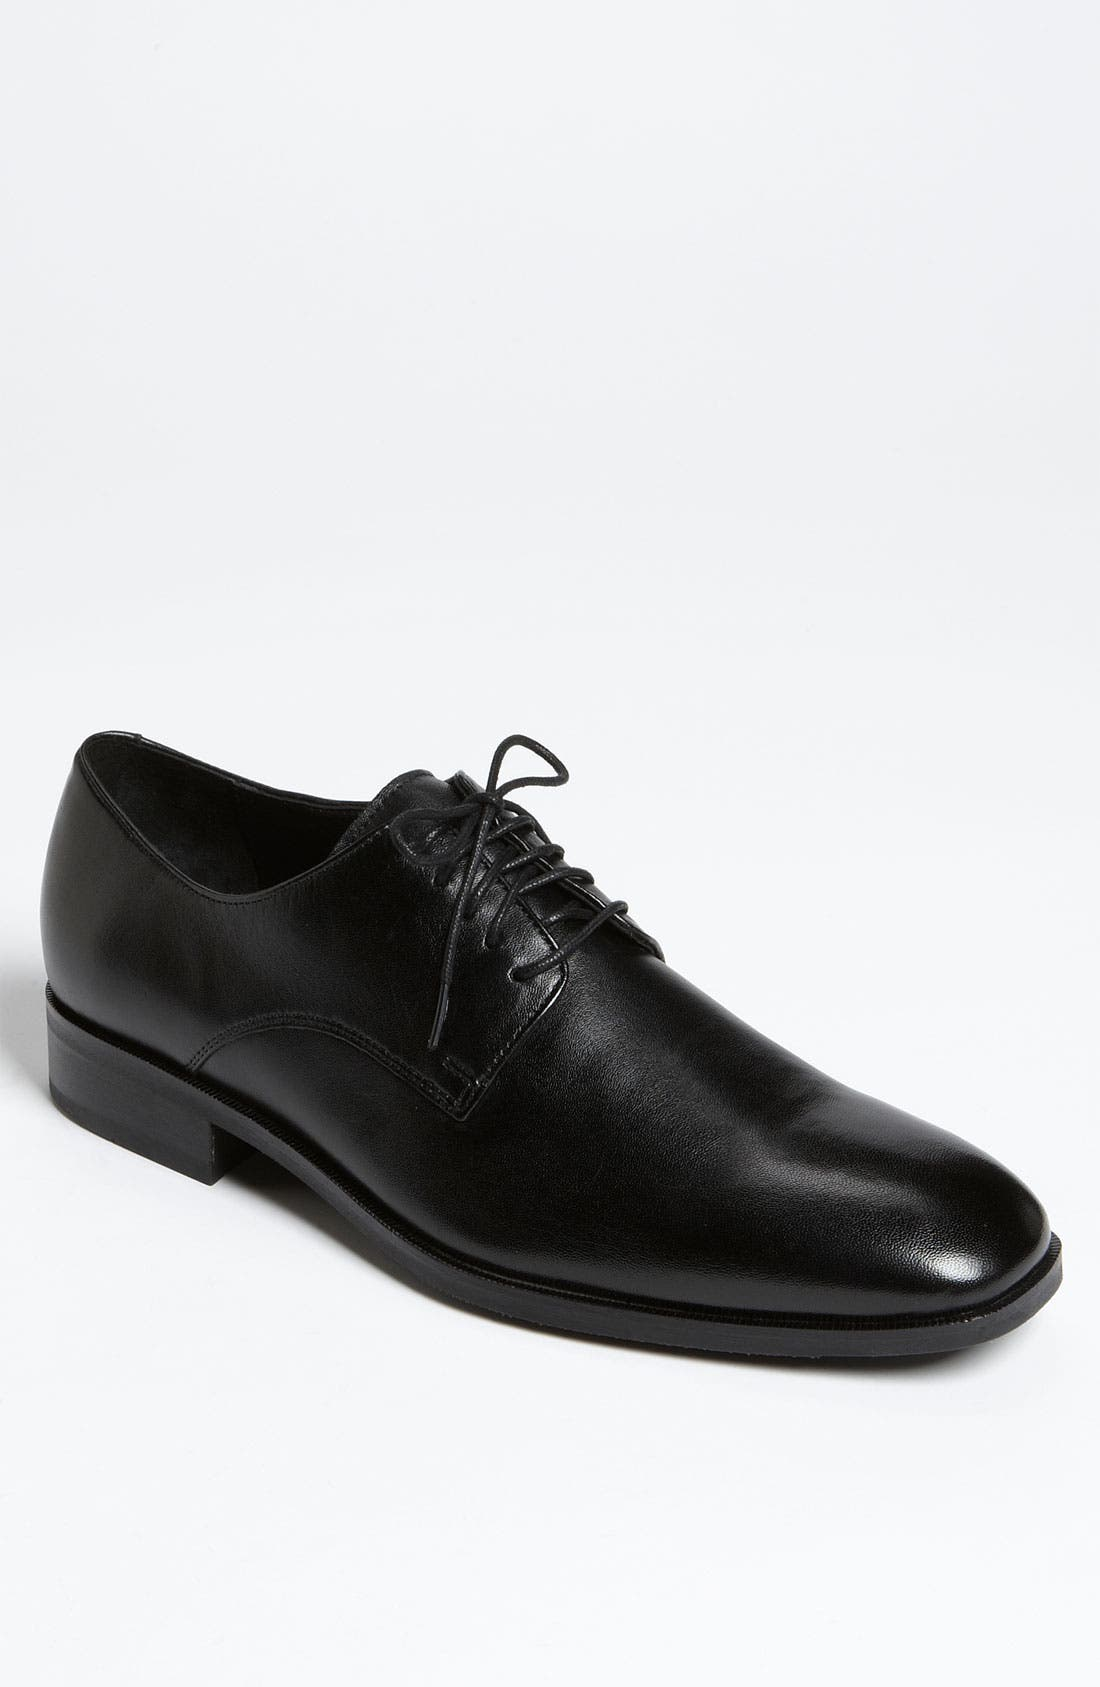 Alternate Image 1 Selected - Cole Haan 'Air Kilgore' Oxford (Online Only)